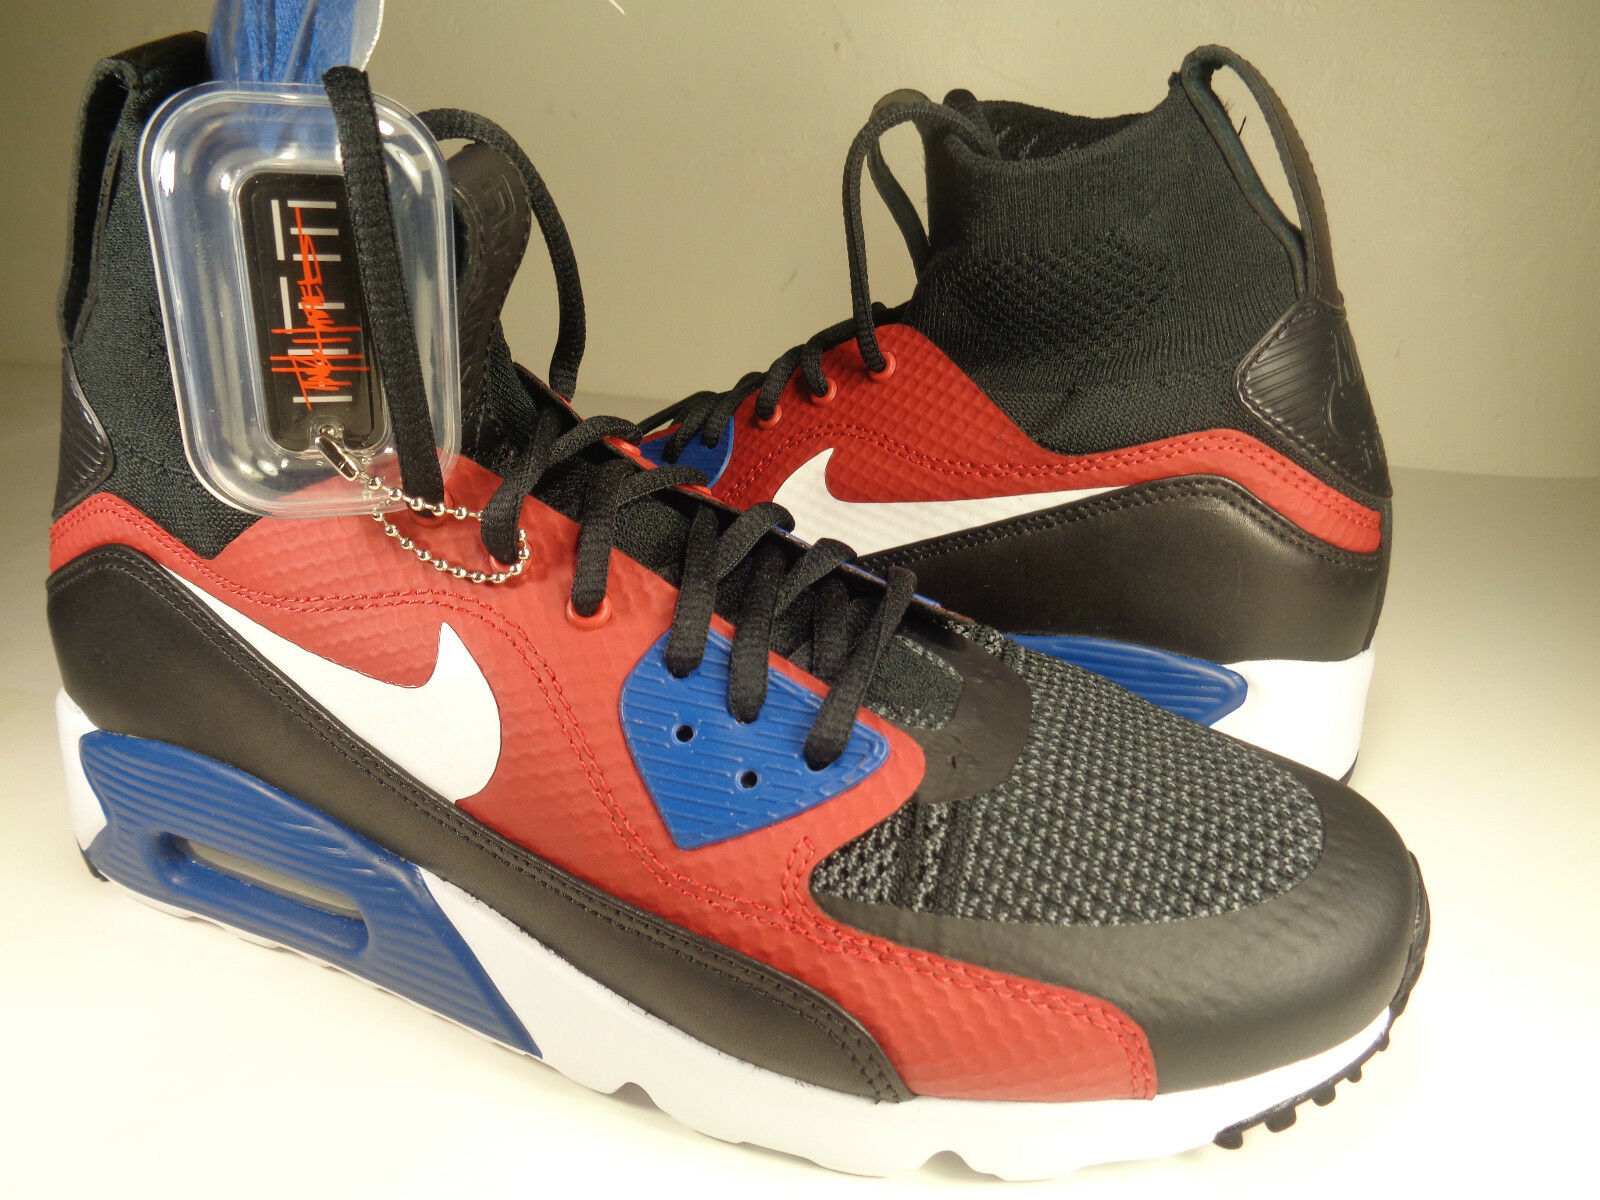 Nike Air Max 90 Ultra Superfly Tinker Hatfield HTM HTM HTM Weiß SZ 8.5 (850613-001) e86cd8